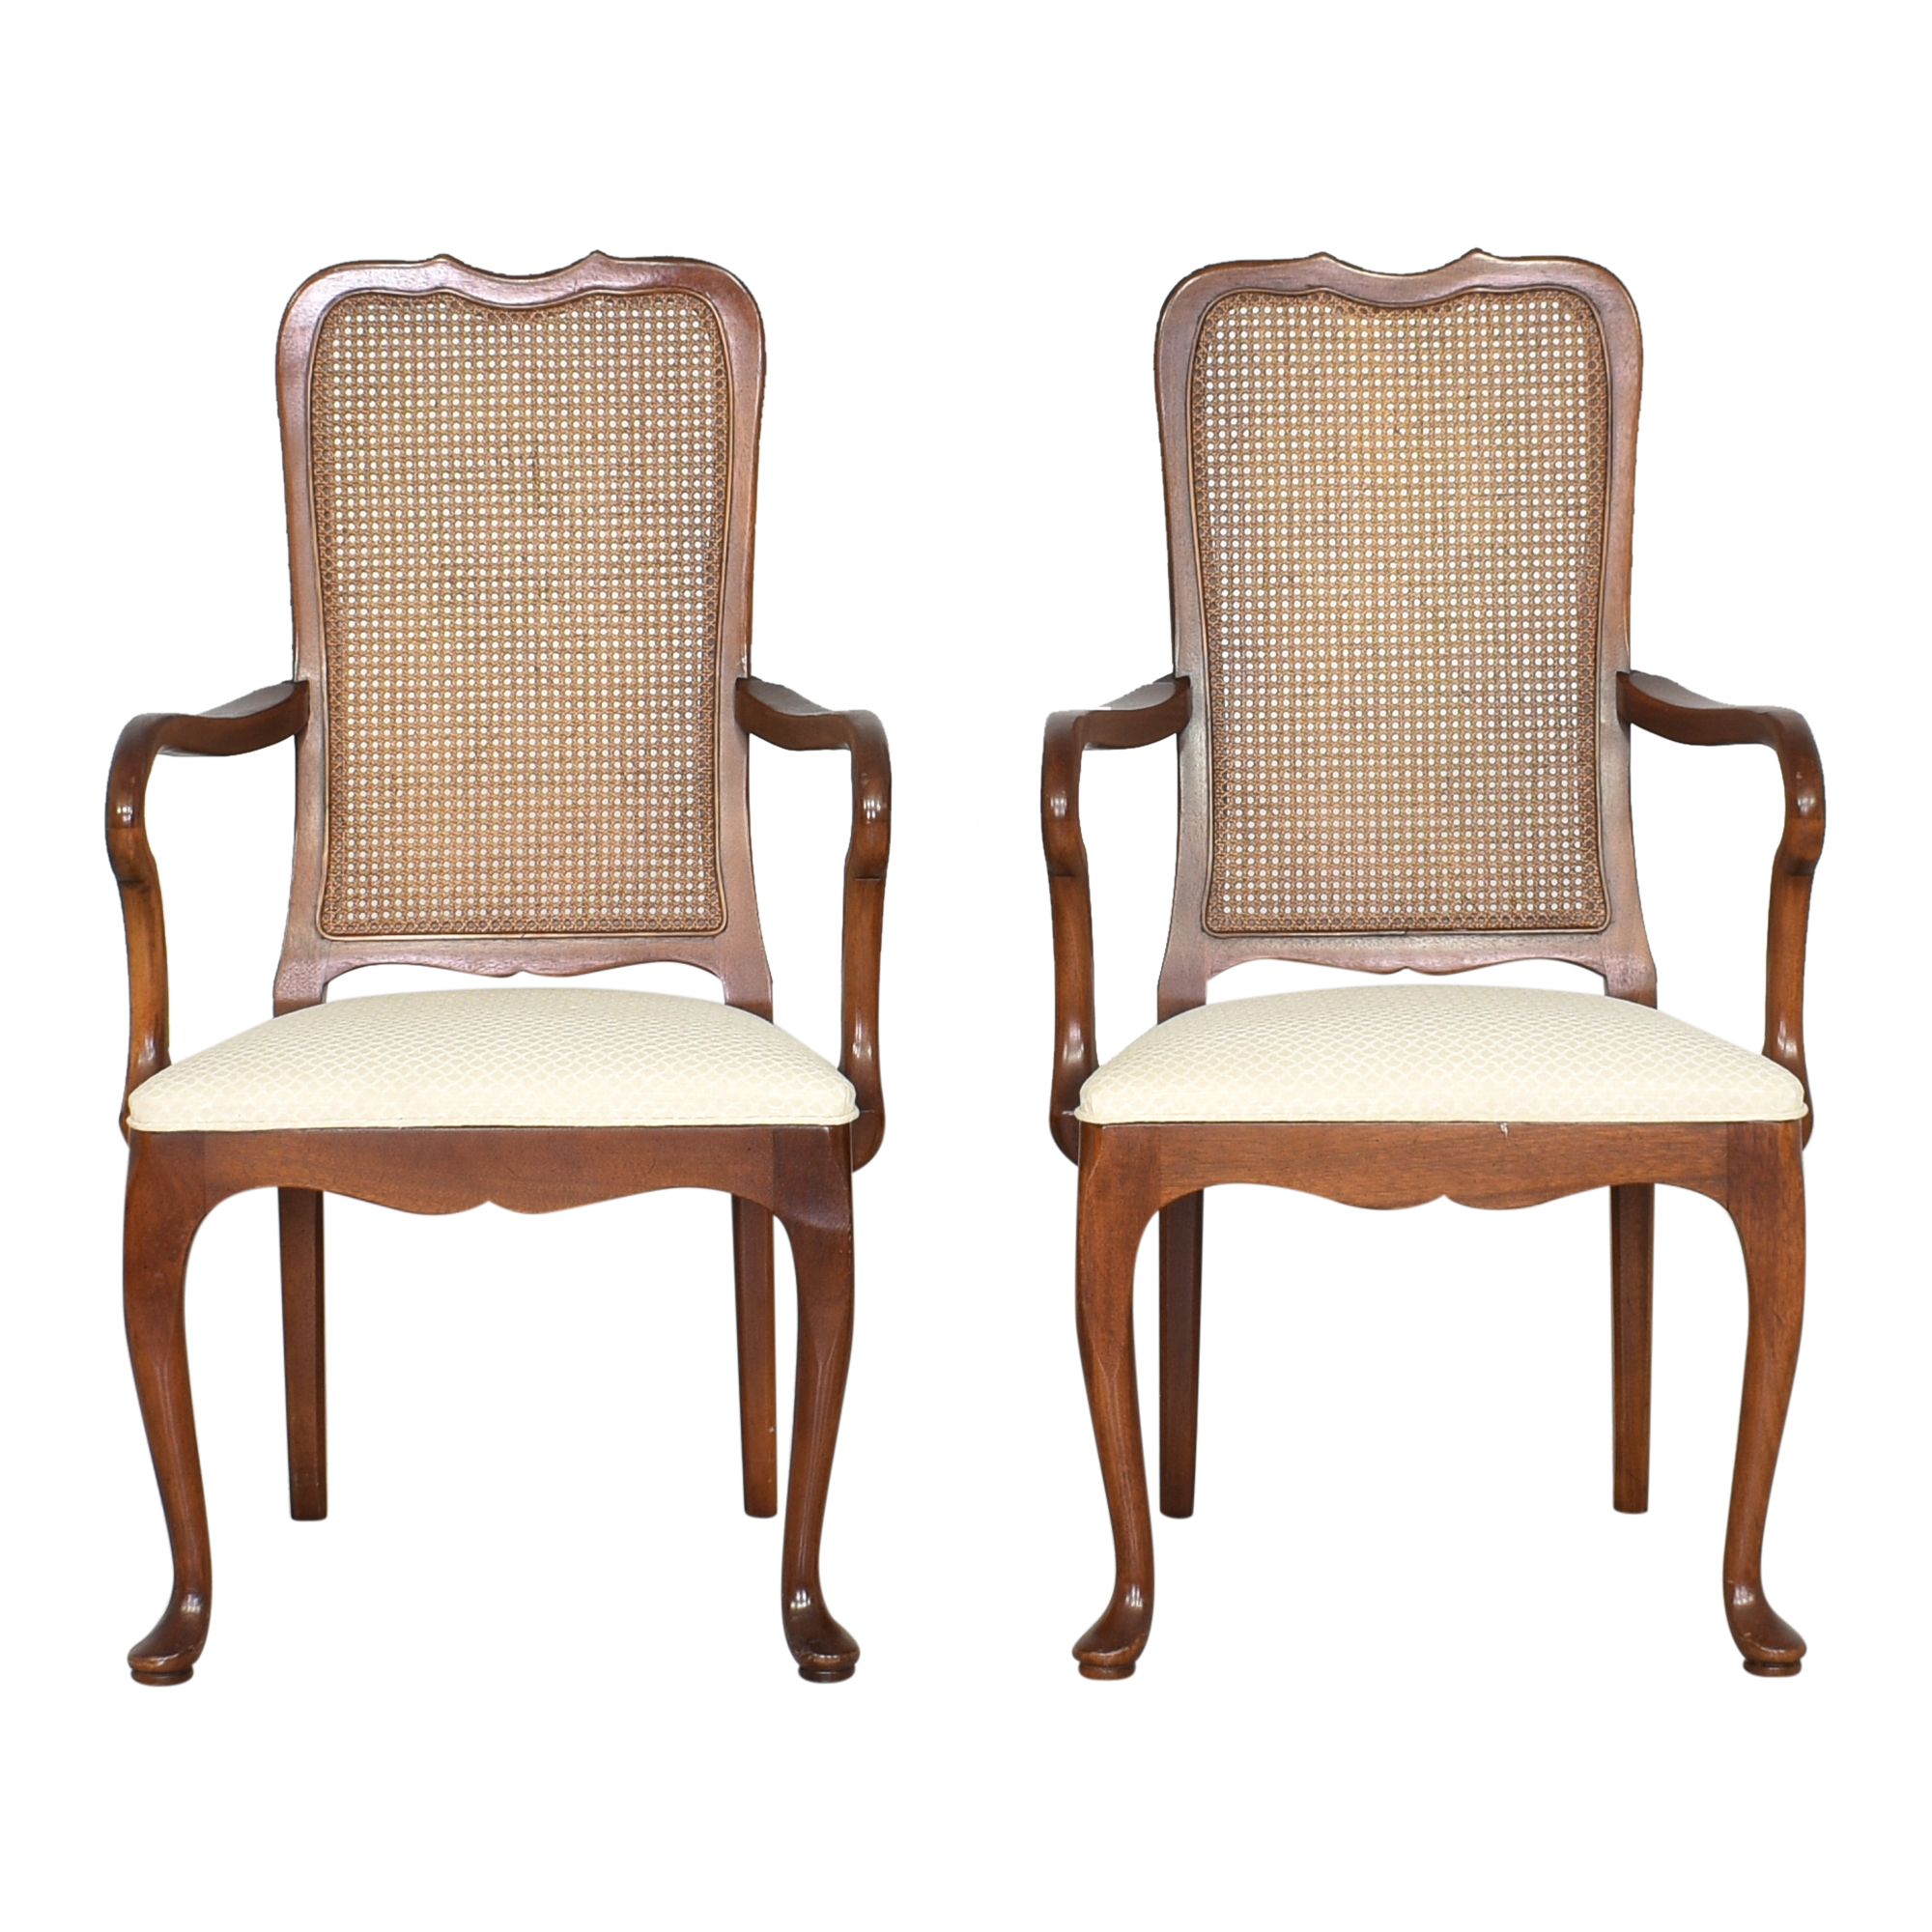 Mastercraft Furniture Mastercraft Furniture Cane Back Dining Arm Chairs ma